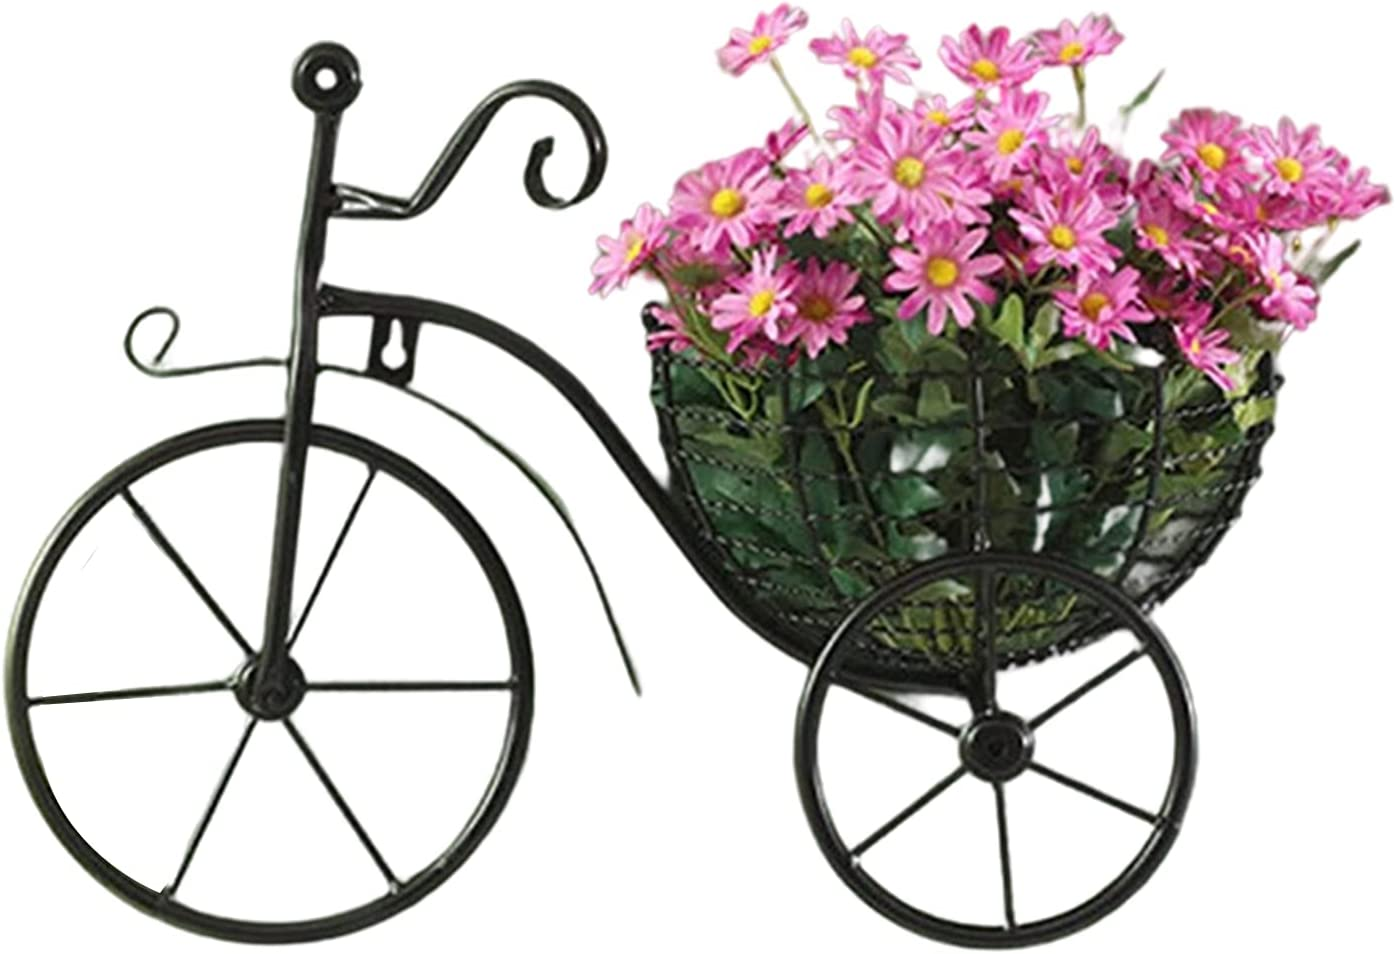 Wrought Iron Hanging Wall Finally popular brand Ornament Flower Bicycle Retro f 35% OFF Basket